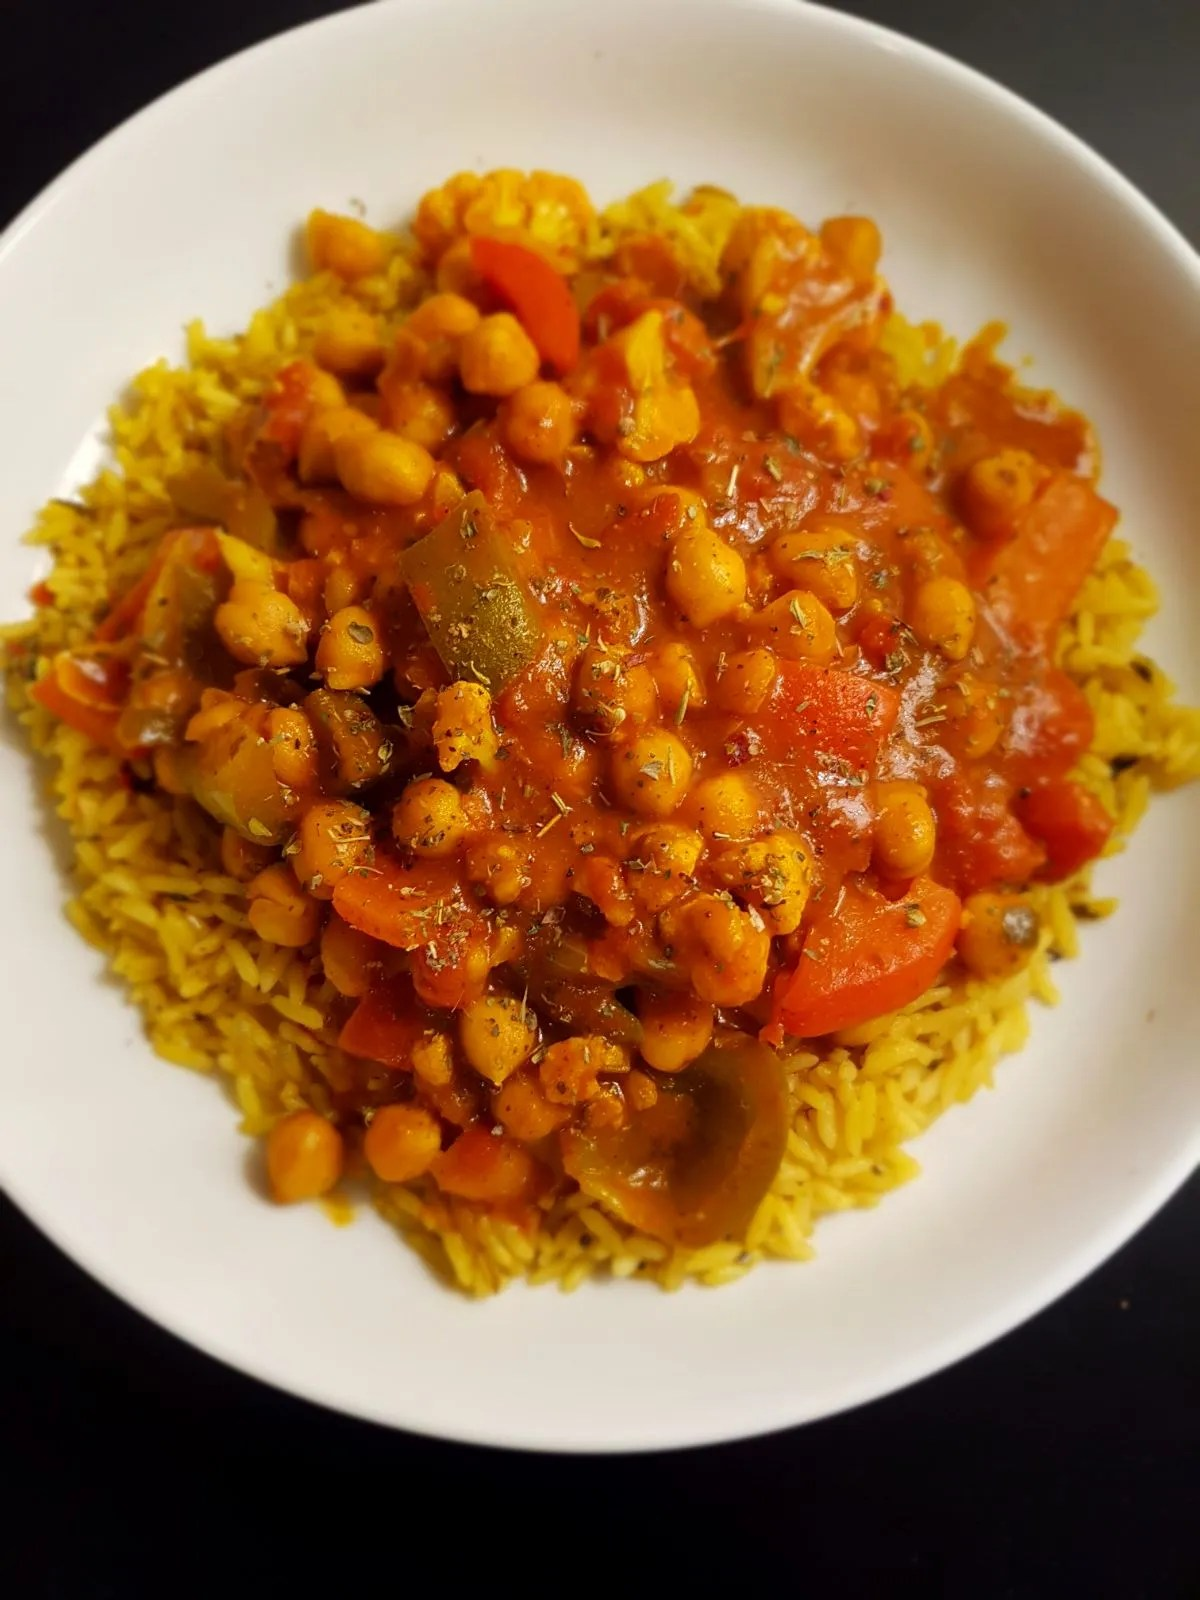 Tikka masala curry plant-based with chickpeas